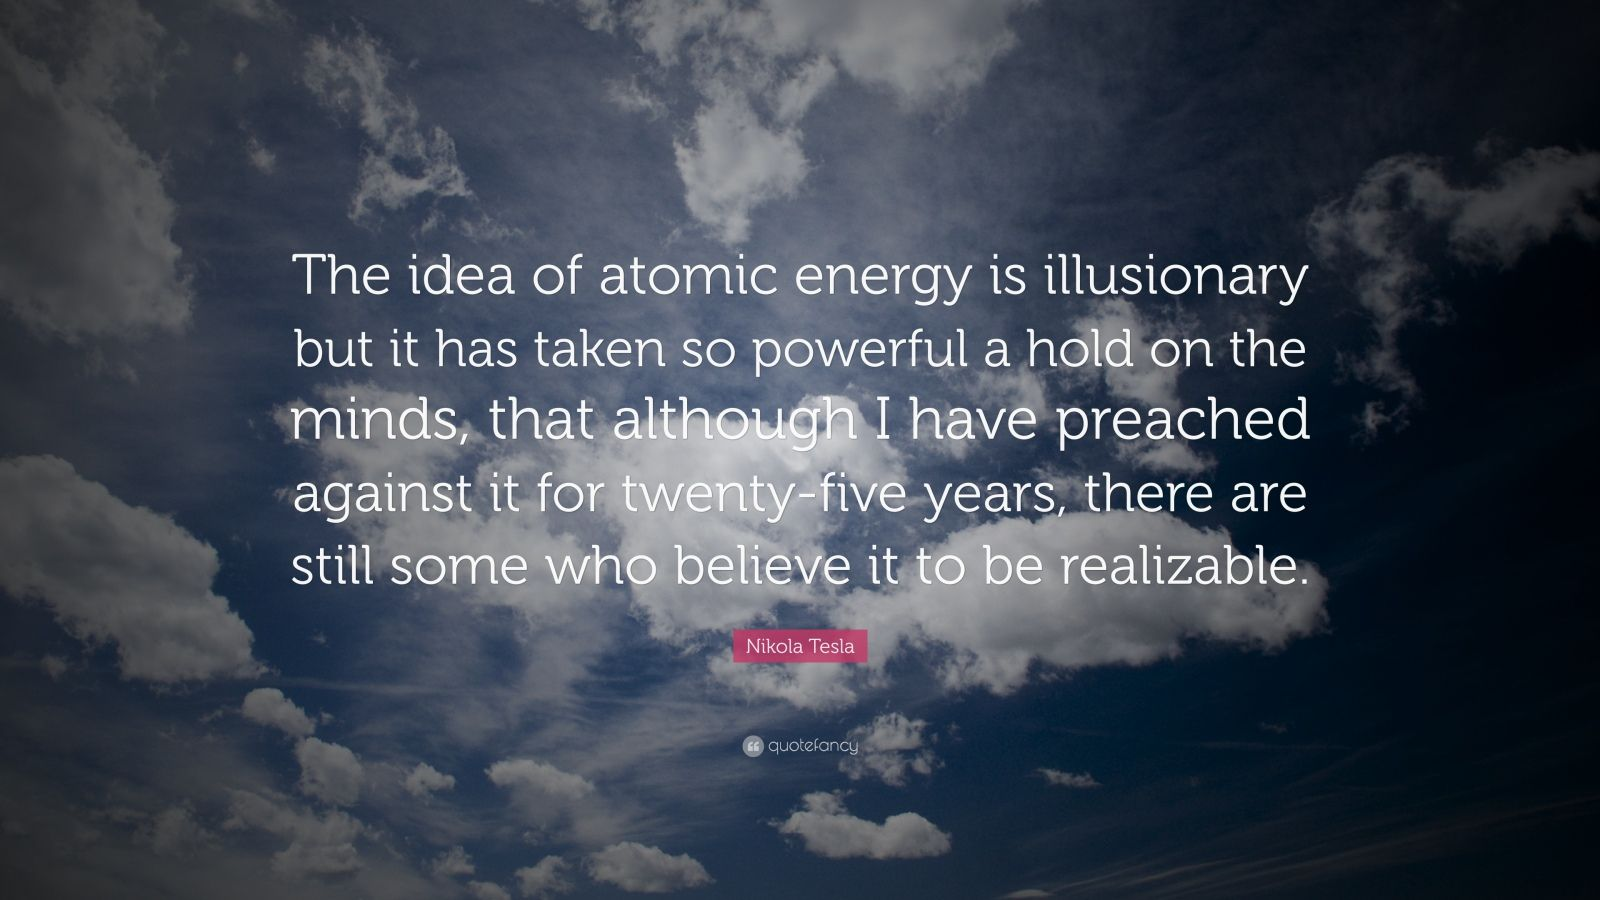 """Nikola Tesla Quote: """"The idea of atomic energy is illusionary but it has taken so powerful a hold on the minds, that although I have preached against it for twenty-five years, there are still some who believe it to be realizable."""""""